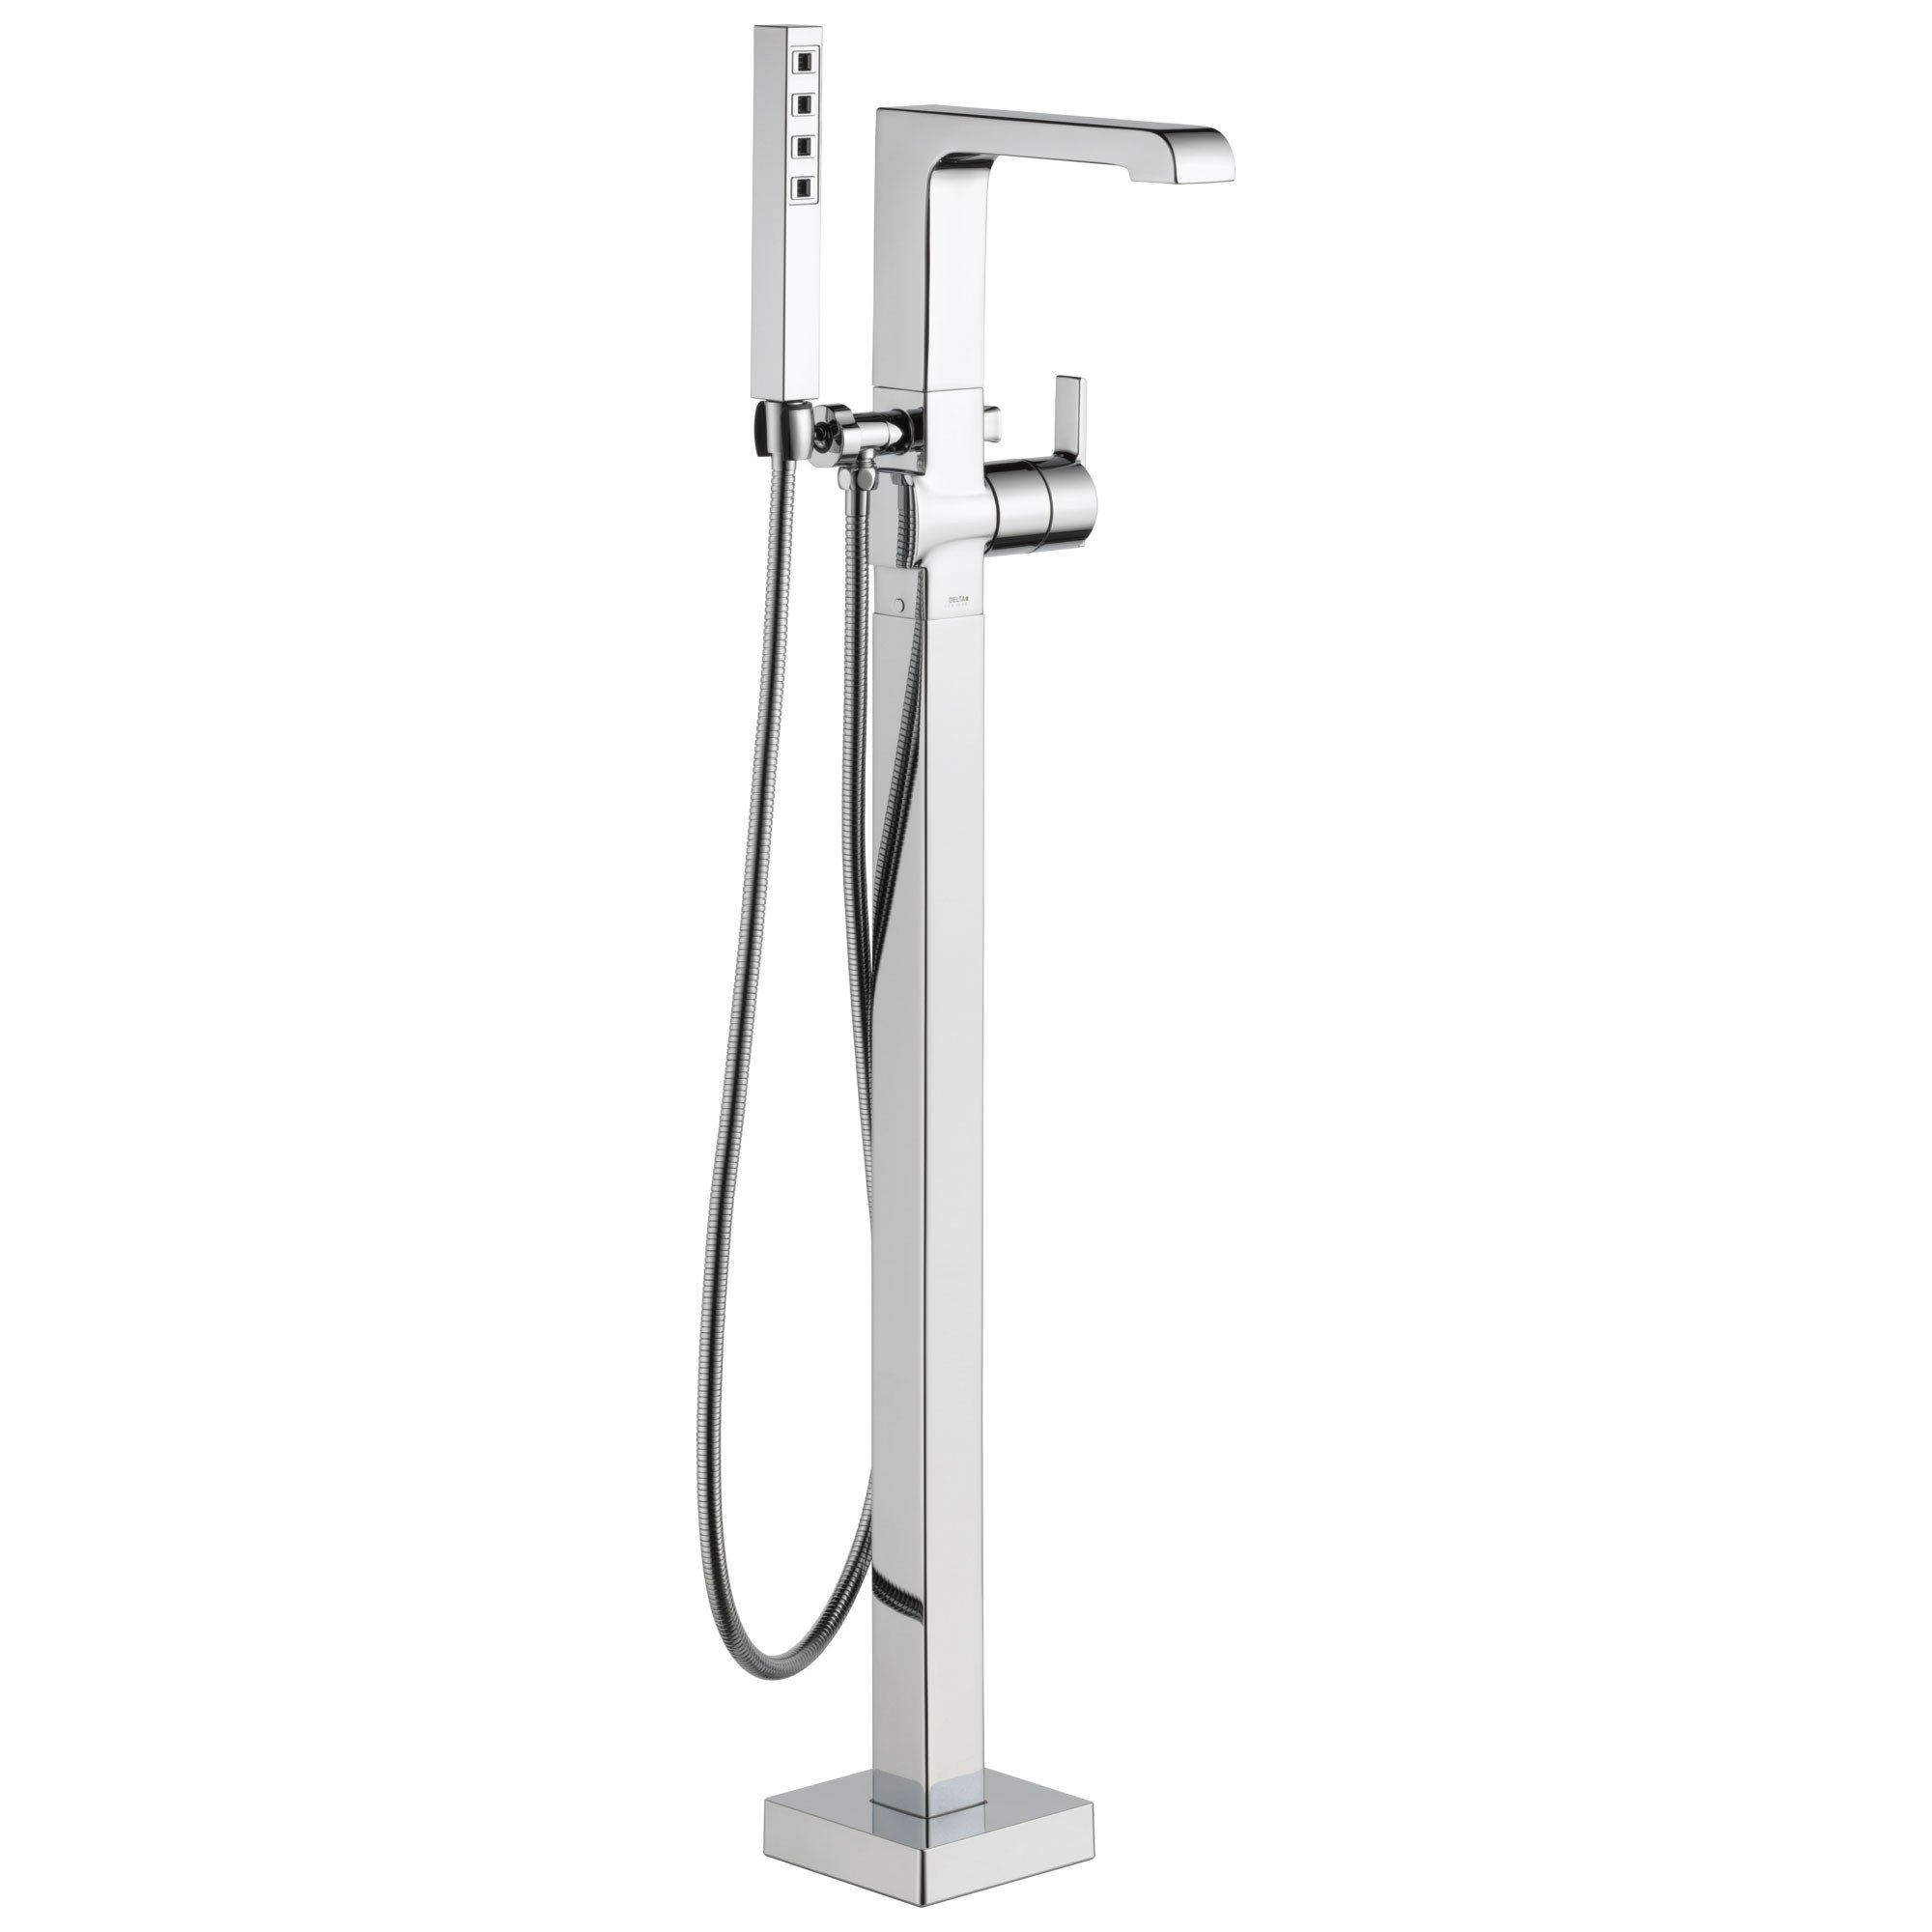 delta ara collection chrome floor mount freestanding contemporary tub filler faucet with hand shower trim kit only requires rough in valve dt4767fl